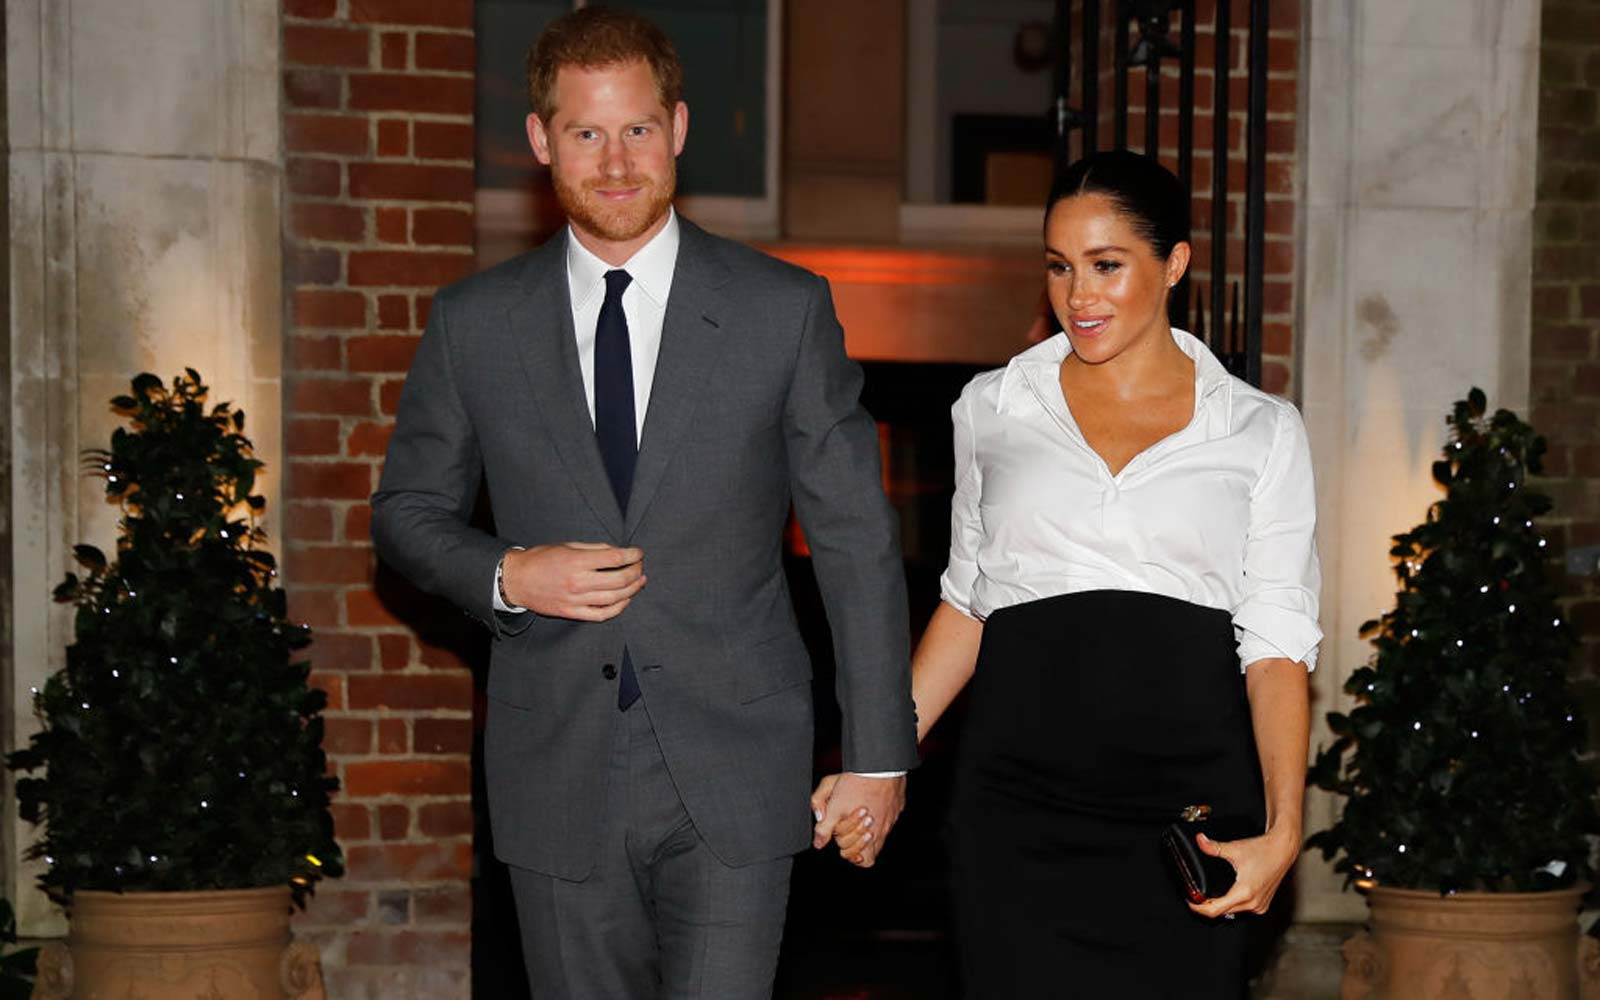 Meghan Markle and Prince Harry Just Announced Their Next Big Trip